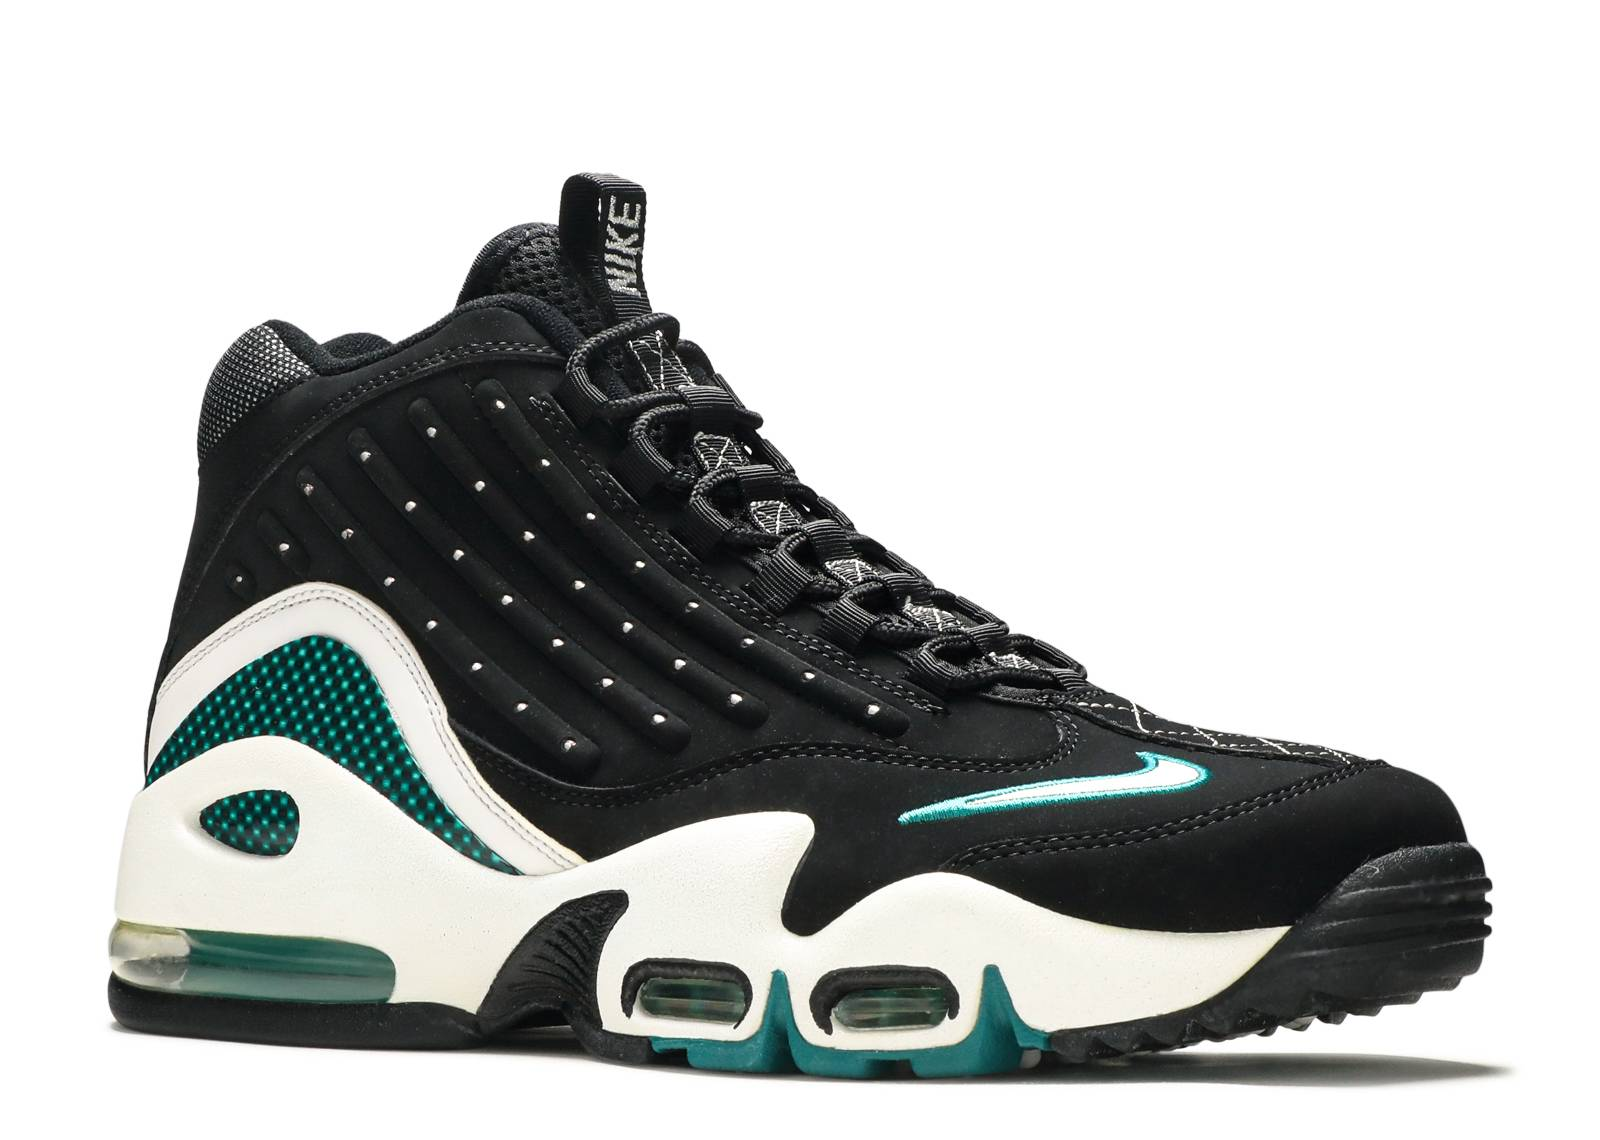 reputable site 0a24e f68e7 nike griffey for cheap flights